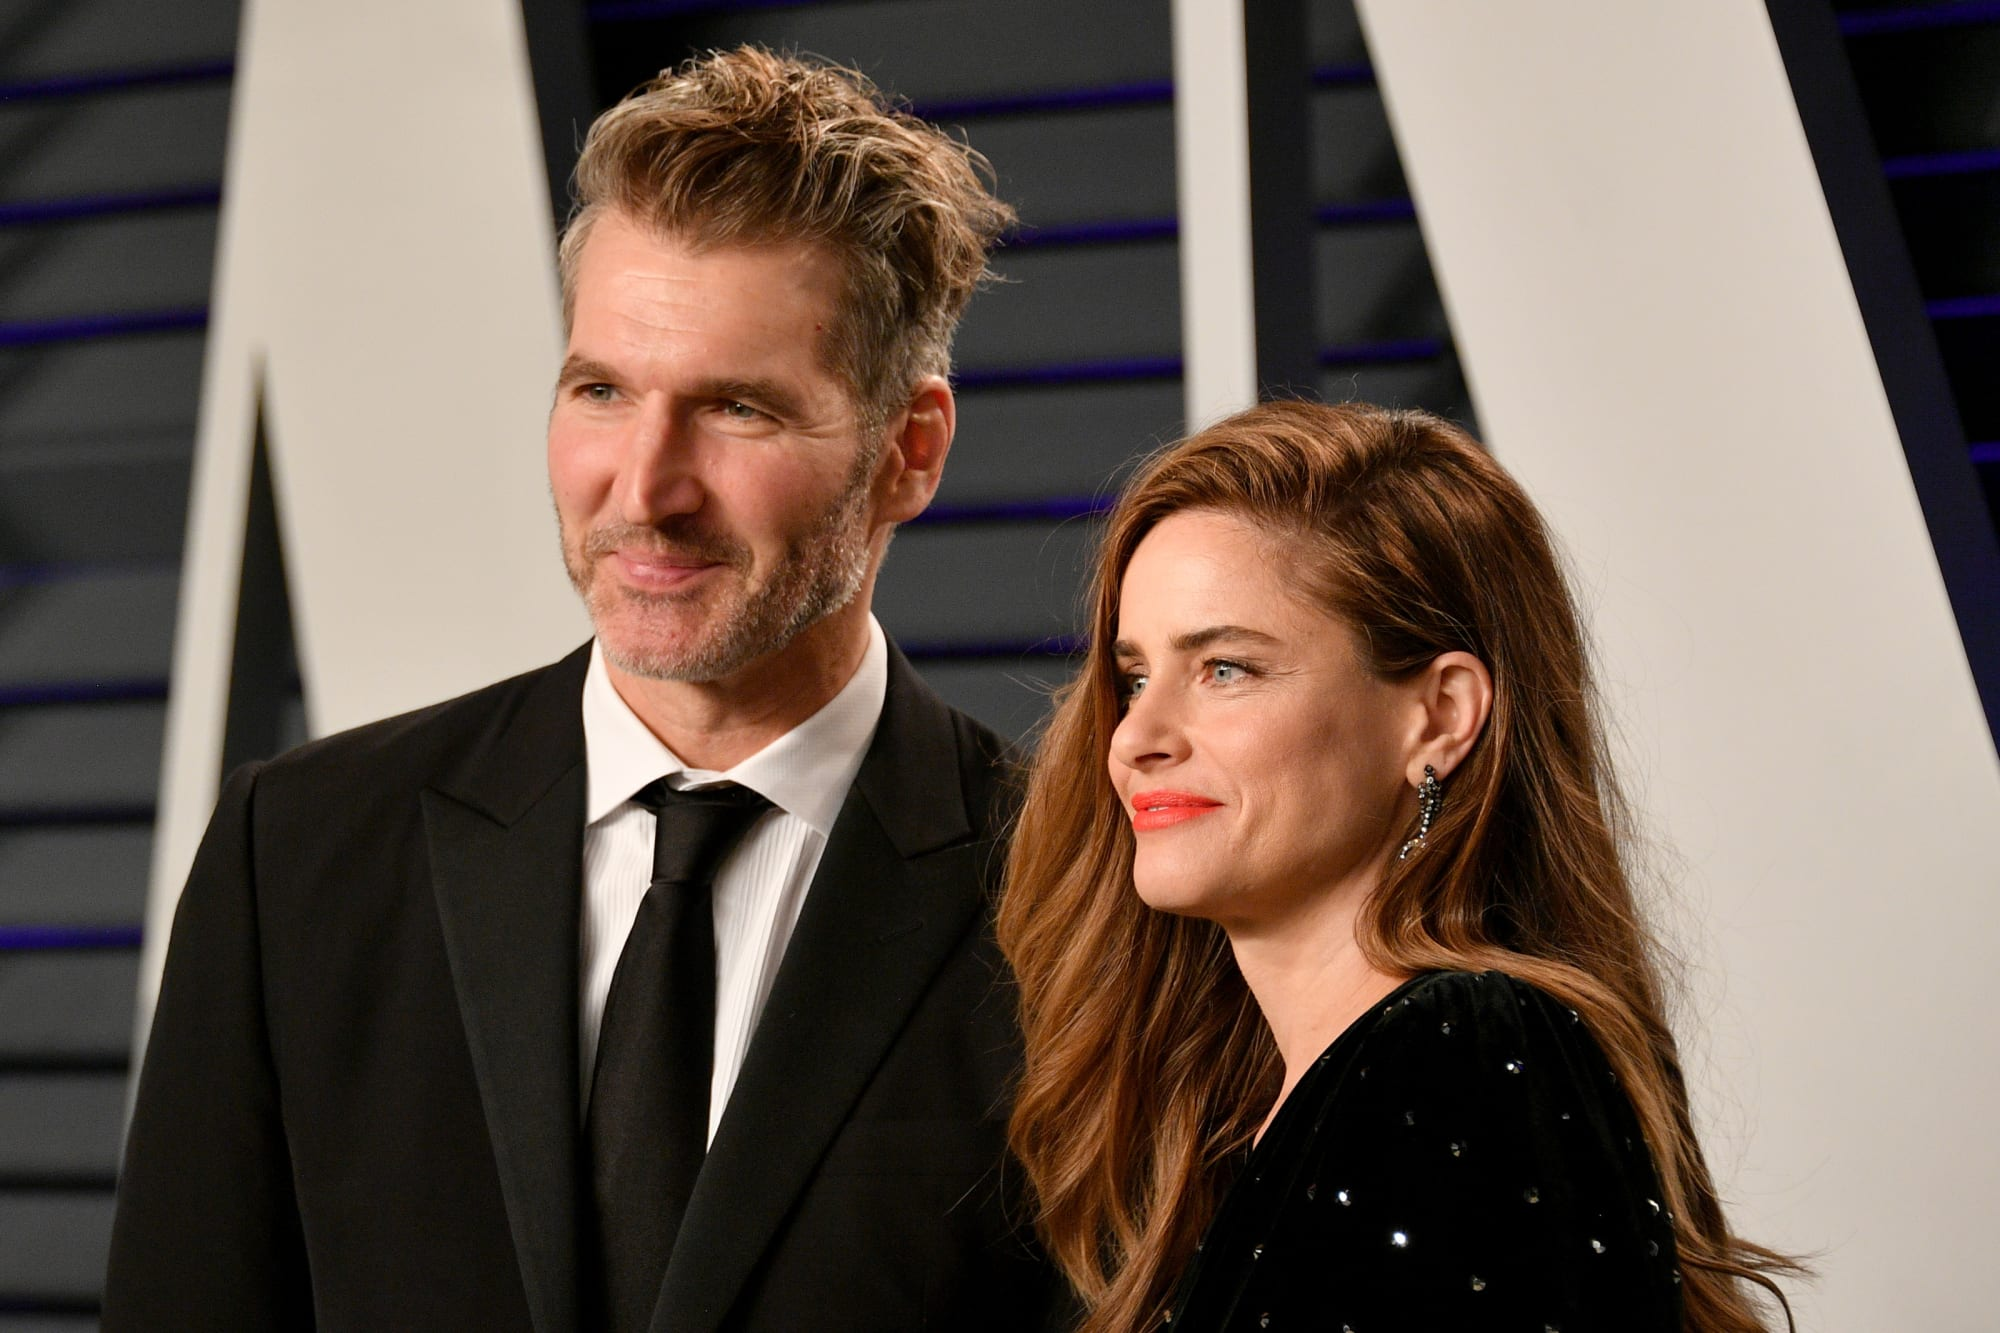 Amanda Peet, wife of Game of Thrones creator, stands by series finale